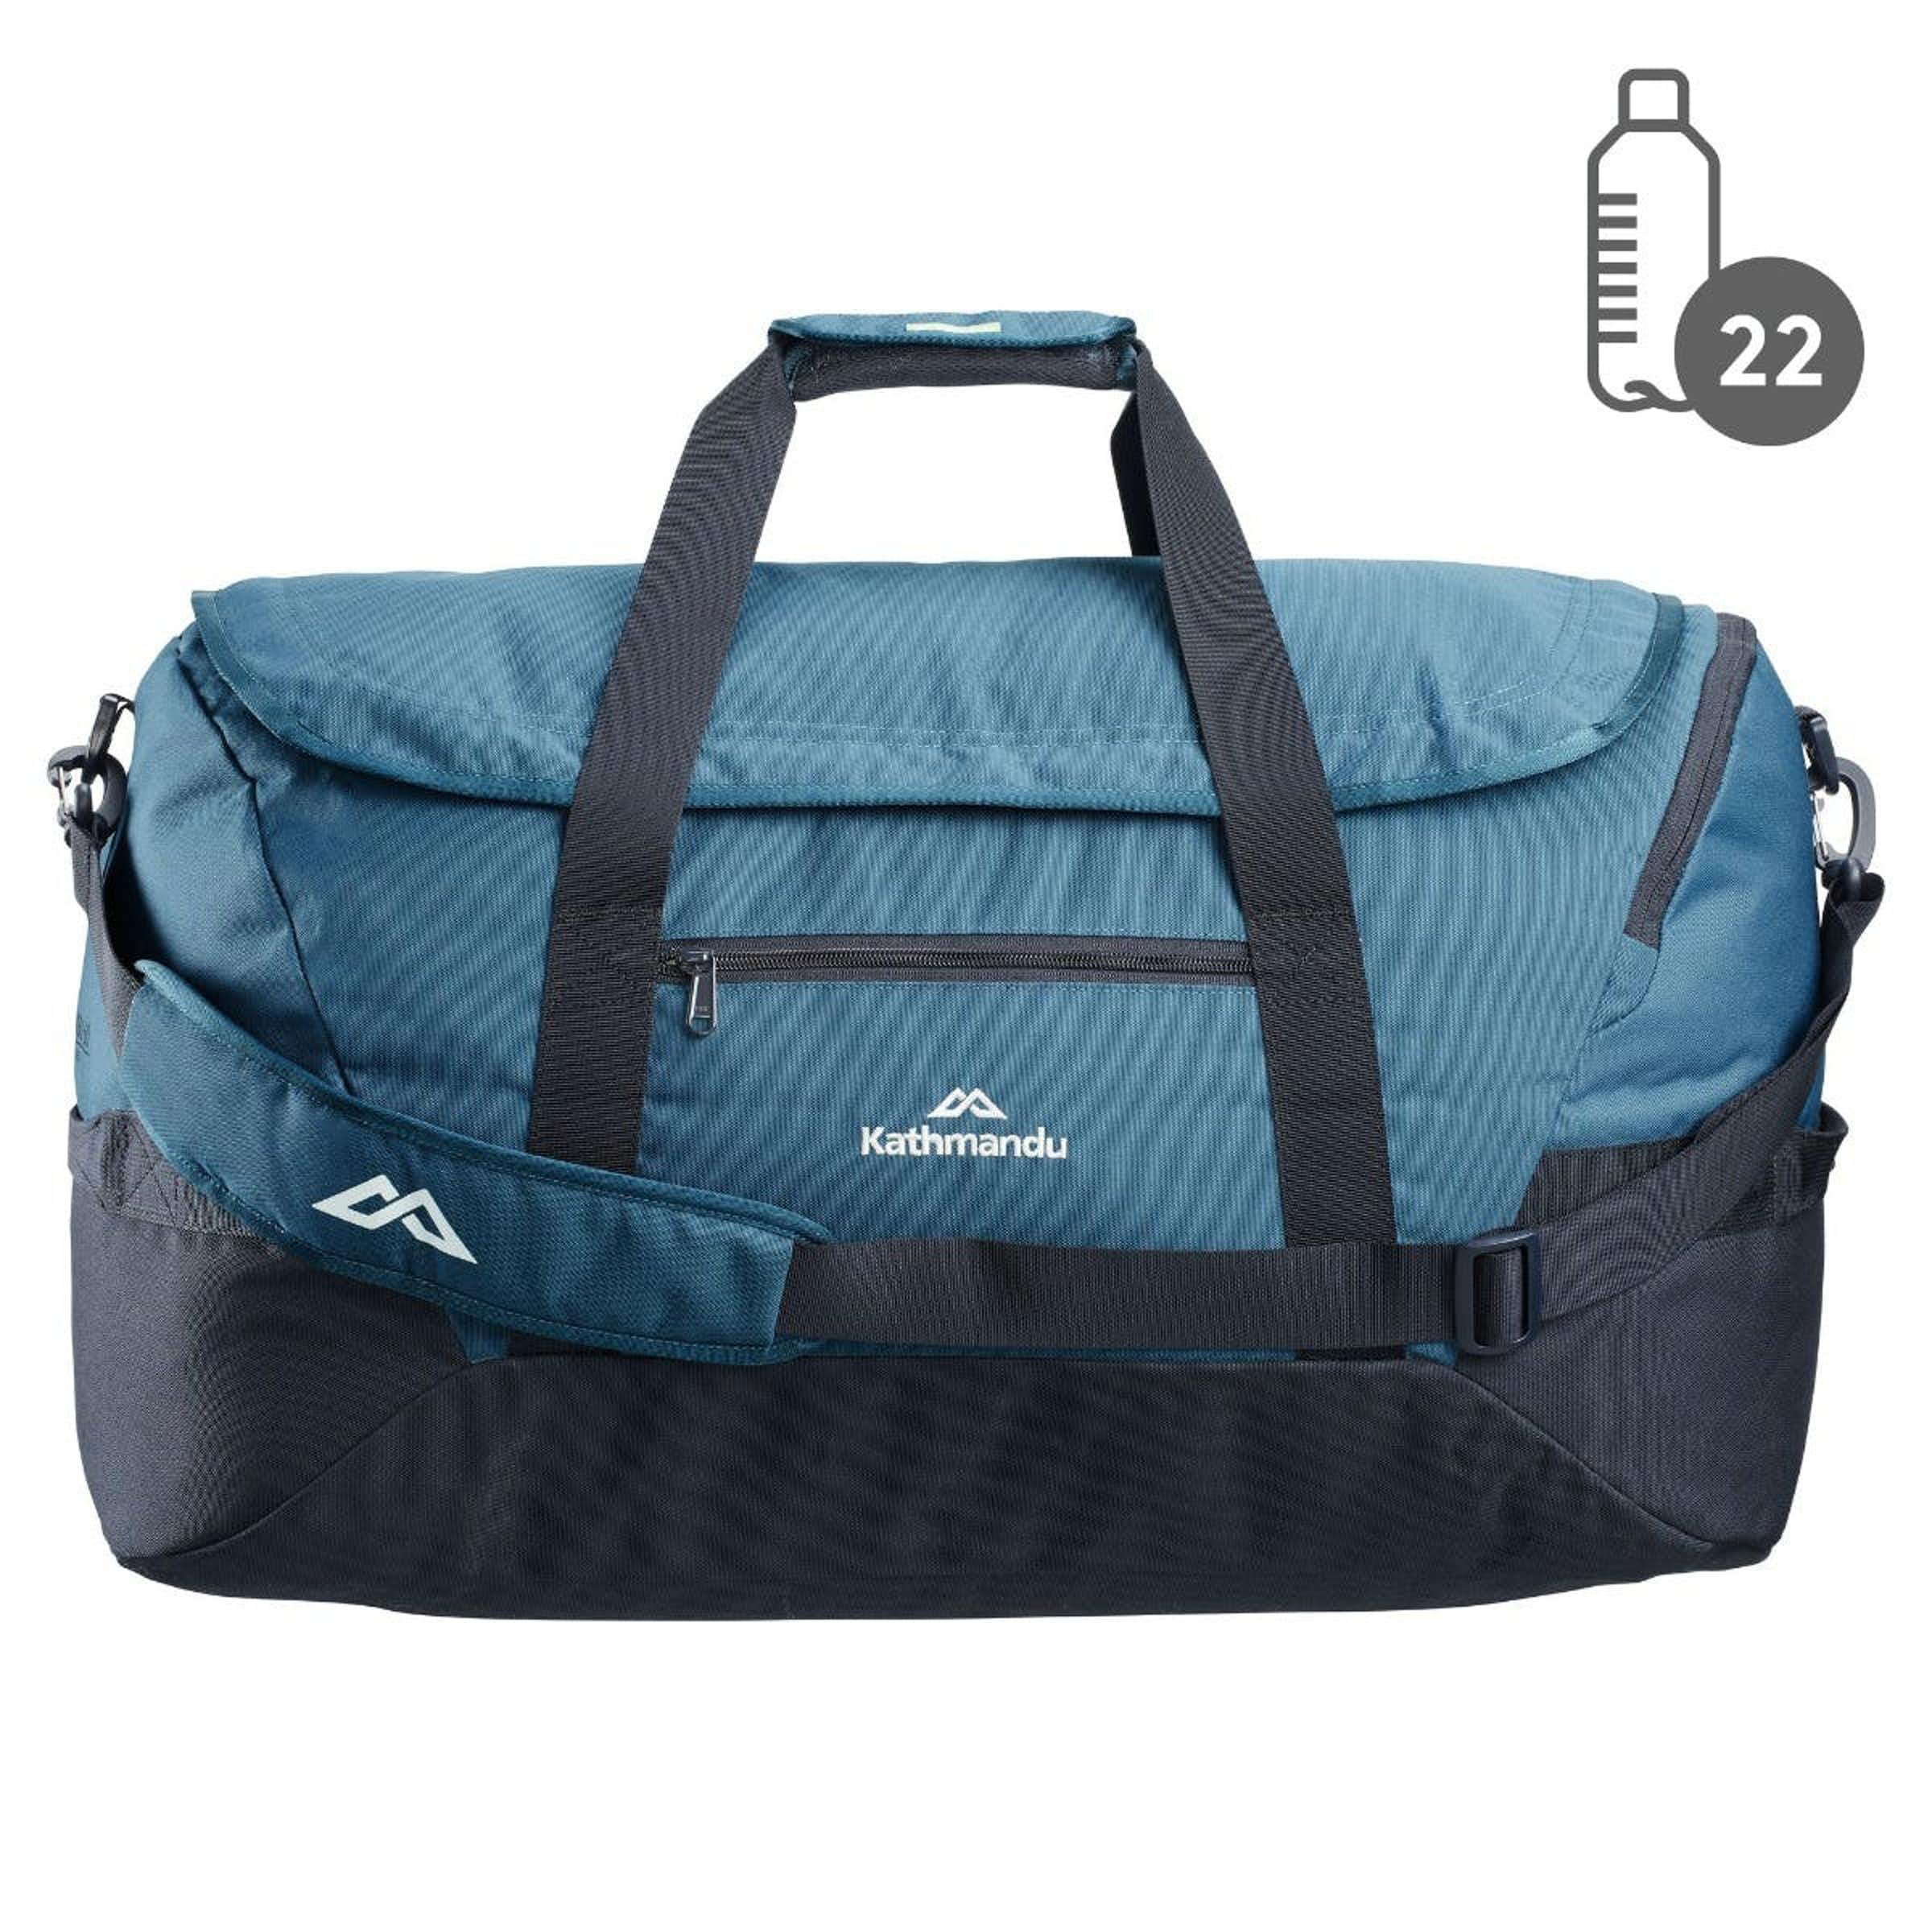 c8a70b7445e Hiking & Camping Bags | Outdoor Bag for Sale Online | Kathmandu AU